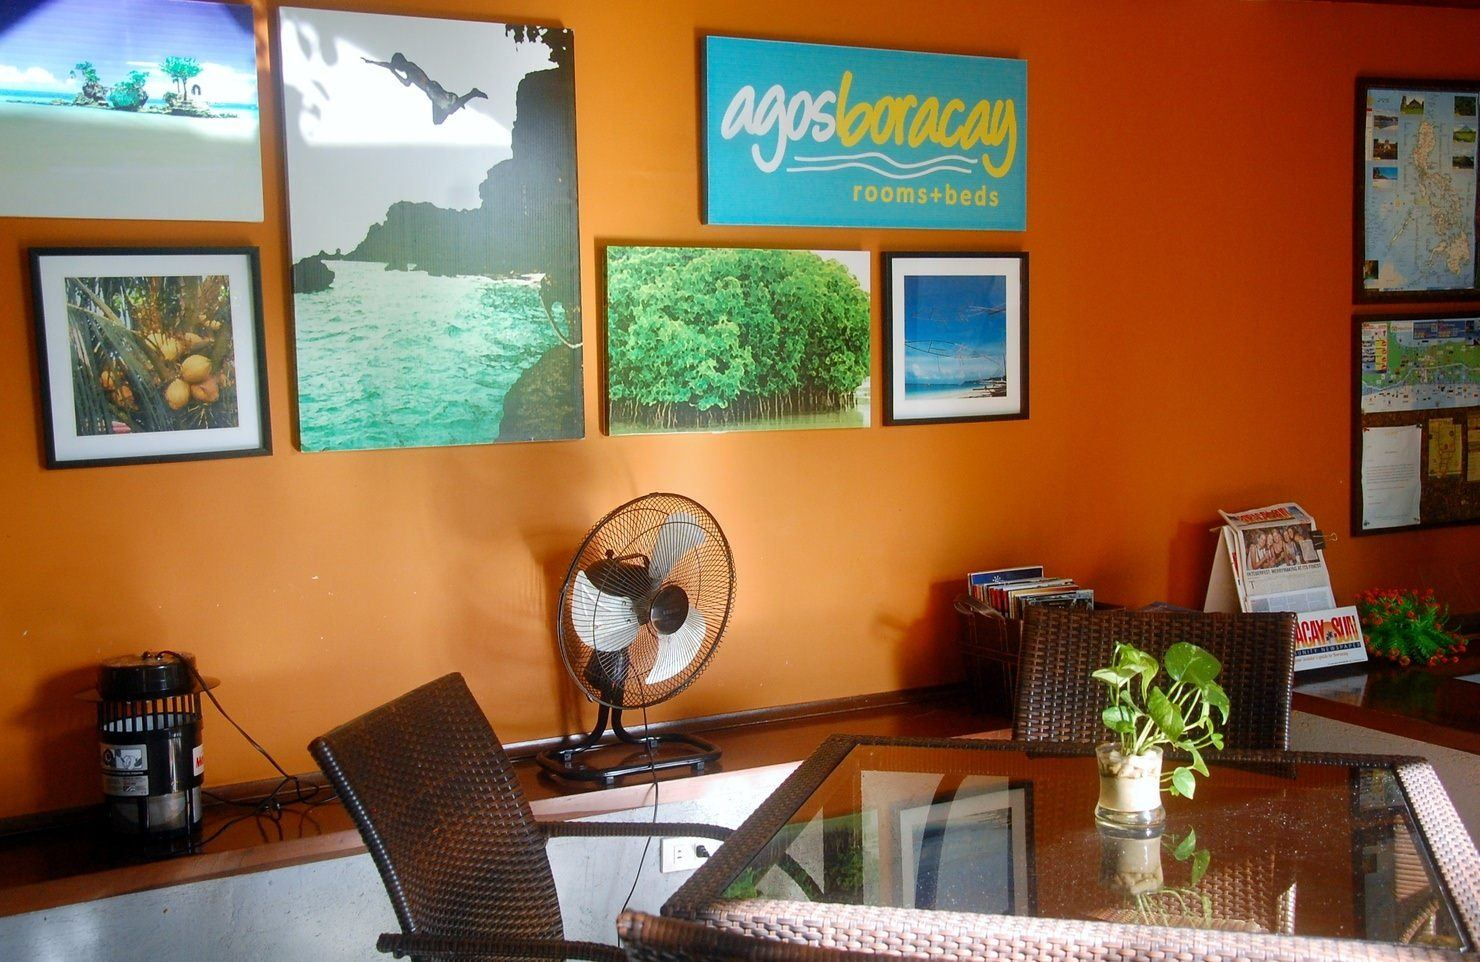 7 Reasons why Agos Boracay Rooms and Beds is Perfect for Family on a Budget